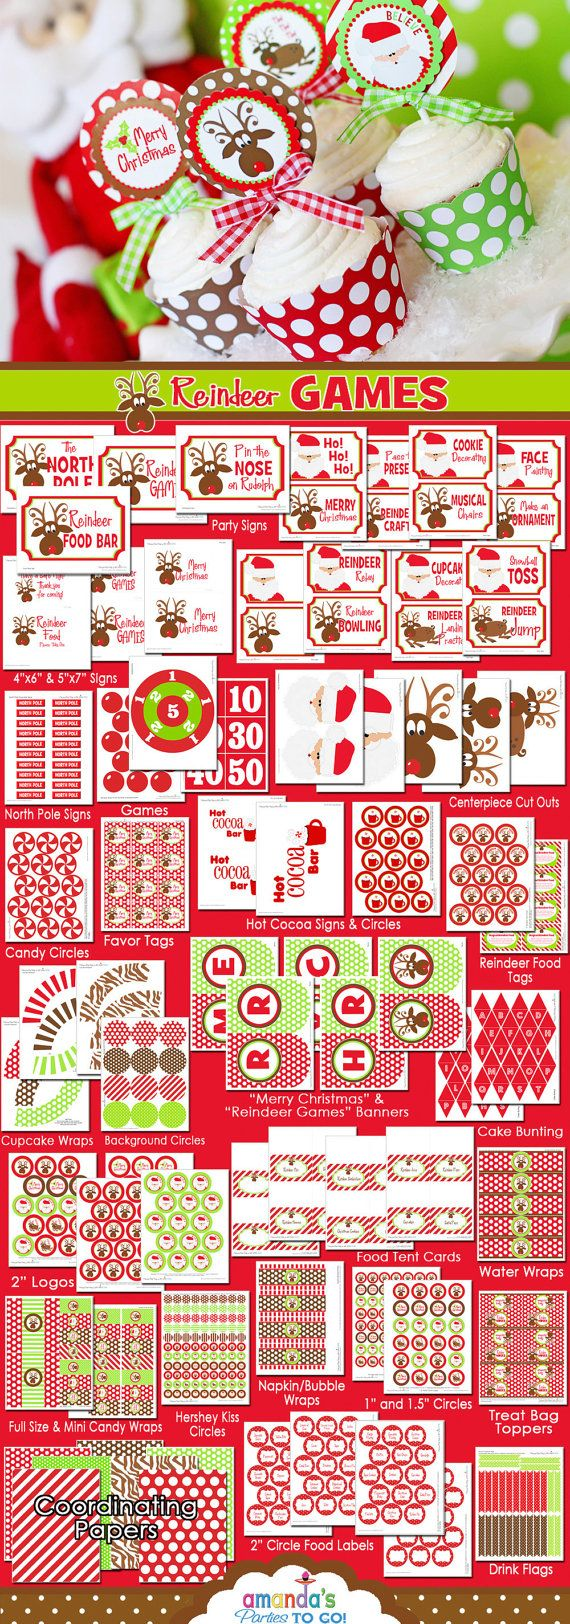 Christmas Reindeer Games  Printables  - Christmas Party - Santa - Huge Party Set by Amanda's Parties To Go - 50% OFF